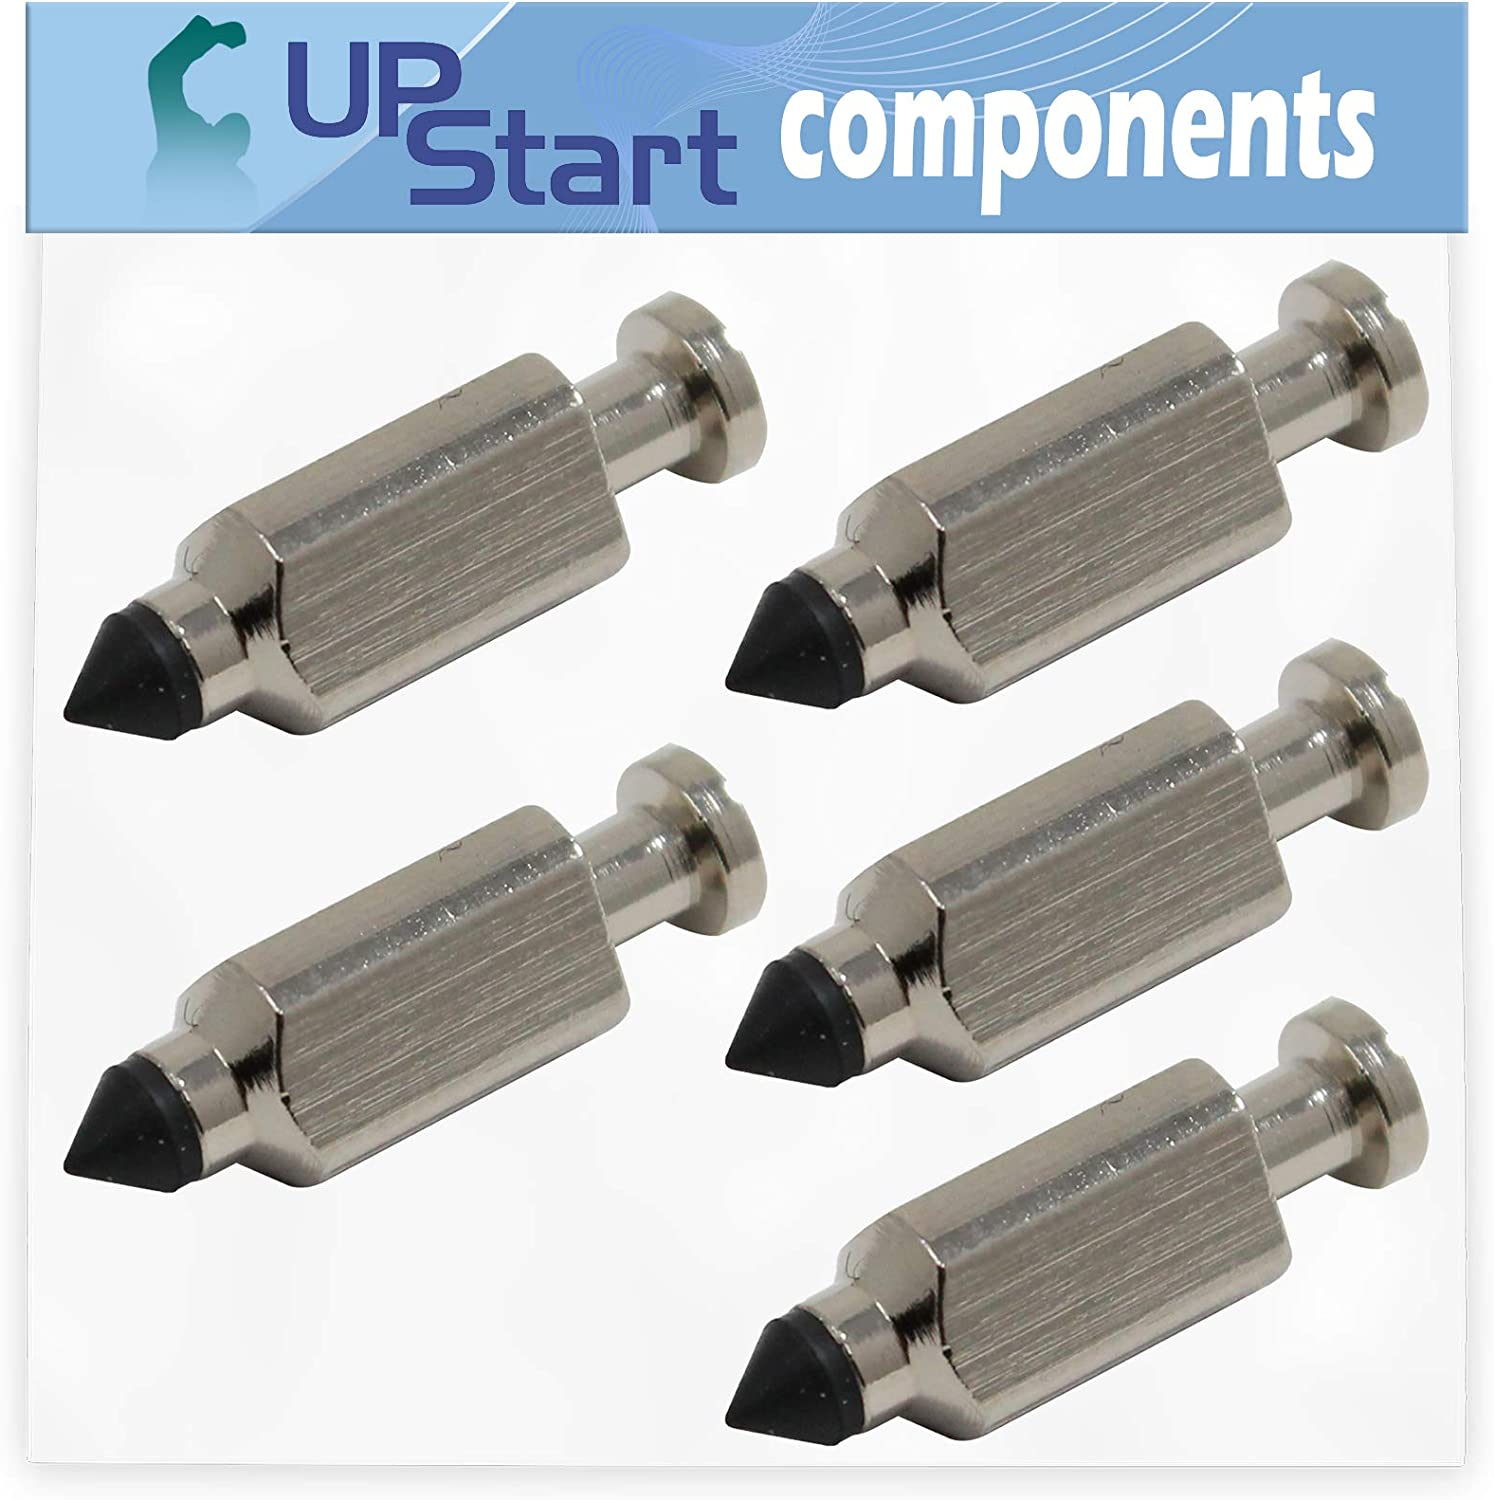 WAM Wide Area Mower Compatible with 231855 Carburetor Float Valve UpStart Components 5-Pack 231855S Float Needle Valve Replacement for Cub Cadet G1236 55AC5GMR050